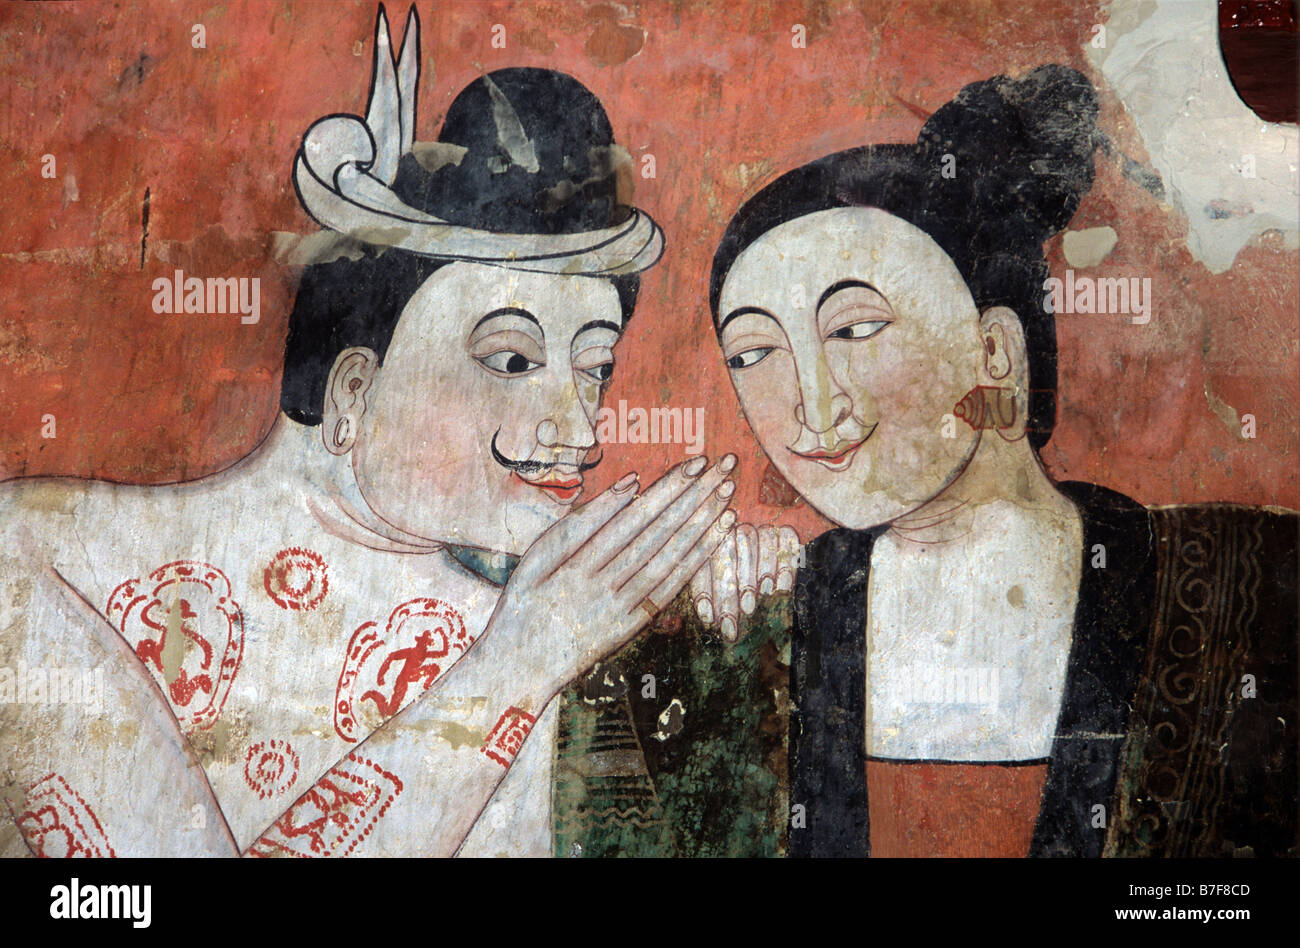 Thai Lovers Seduction, c19th Mural or Wall Painting by Thit Buaphan, Wat Phumin Temple, Nan, northern Thailand - Stock Image